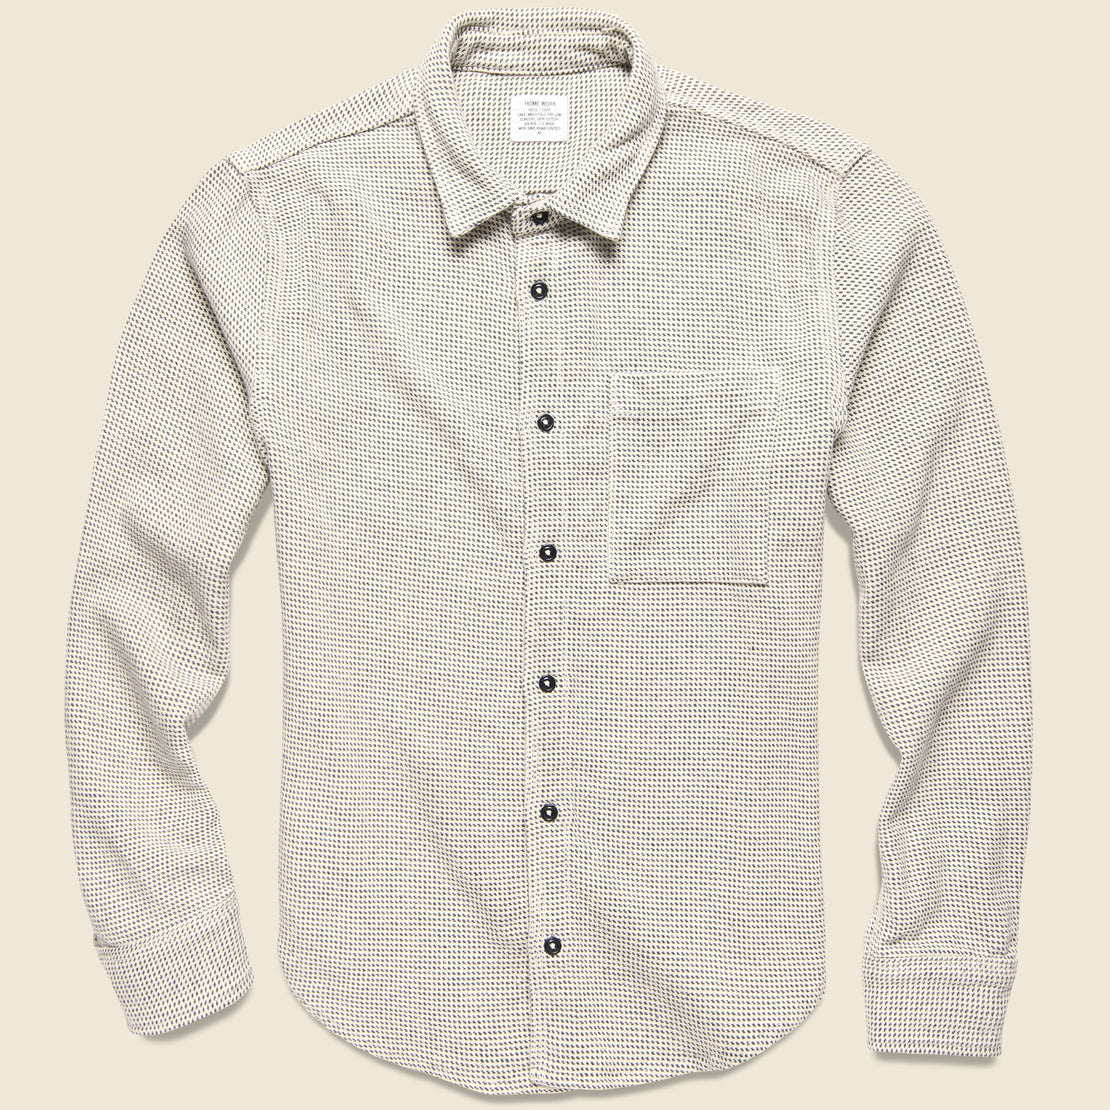 Save Khaki Blanket Twill Overshirt - Chambray Stripe